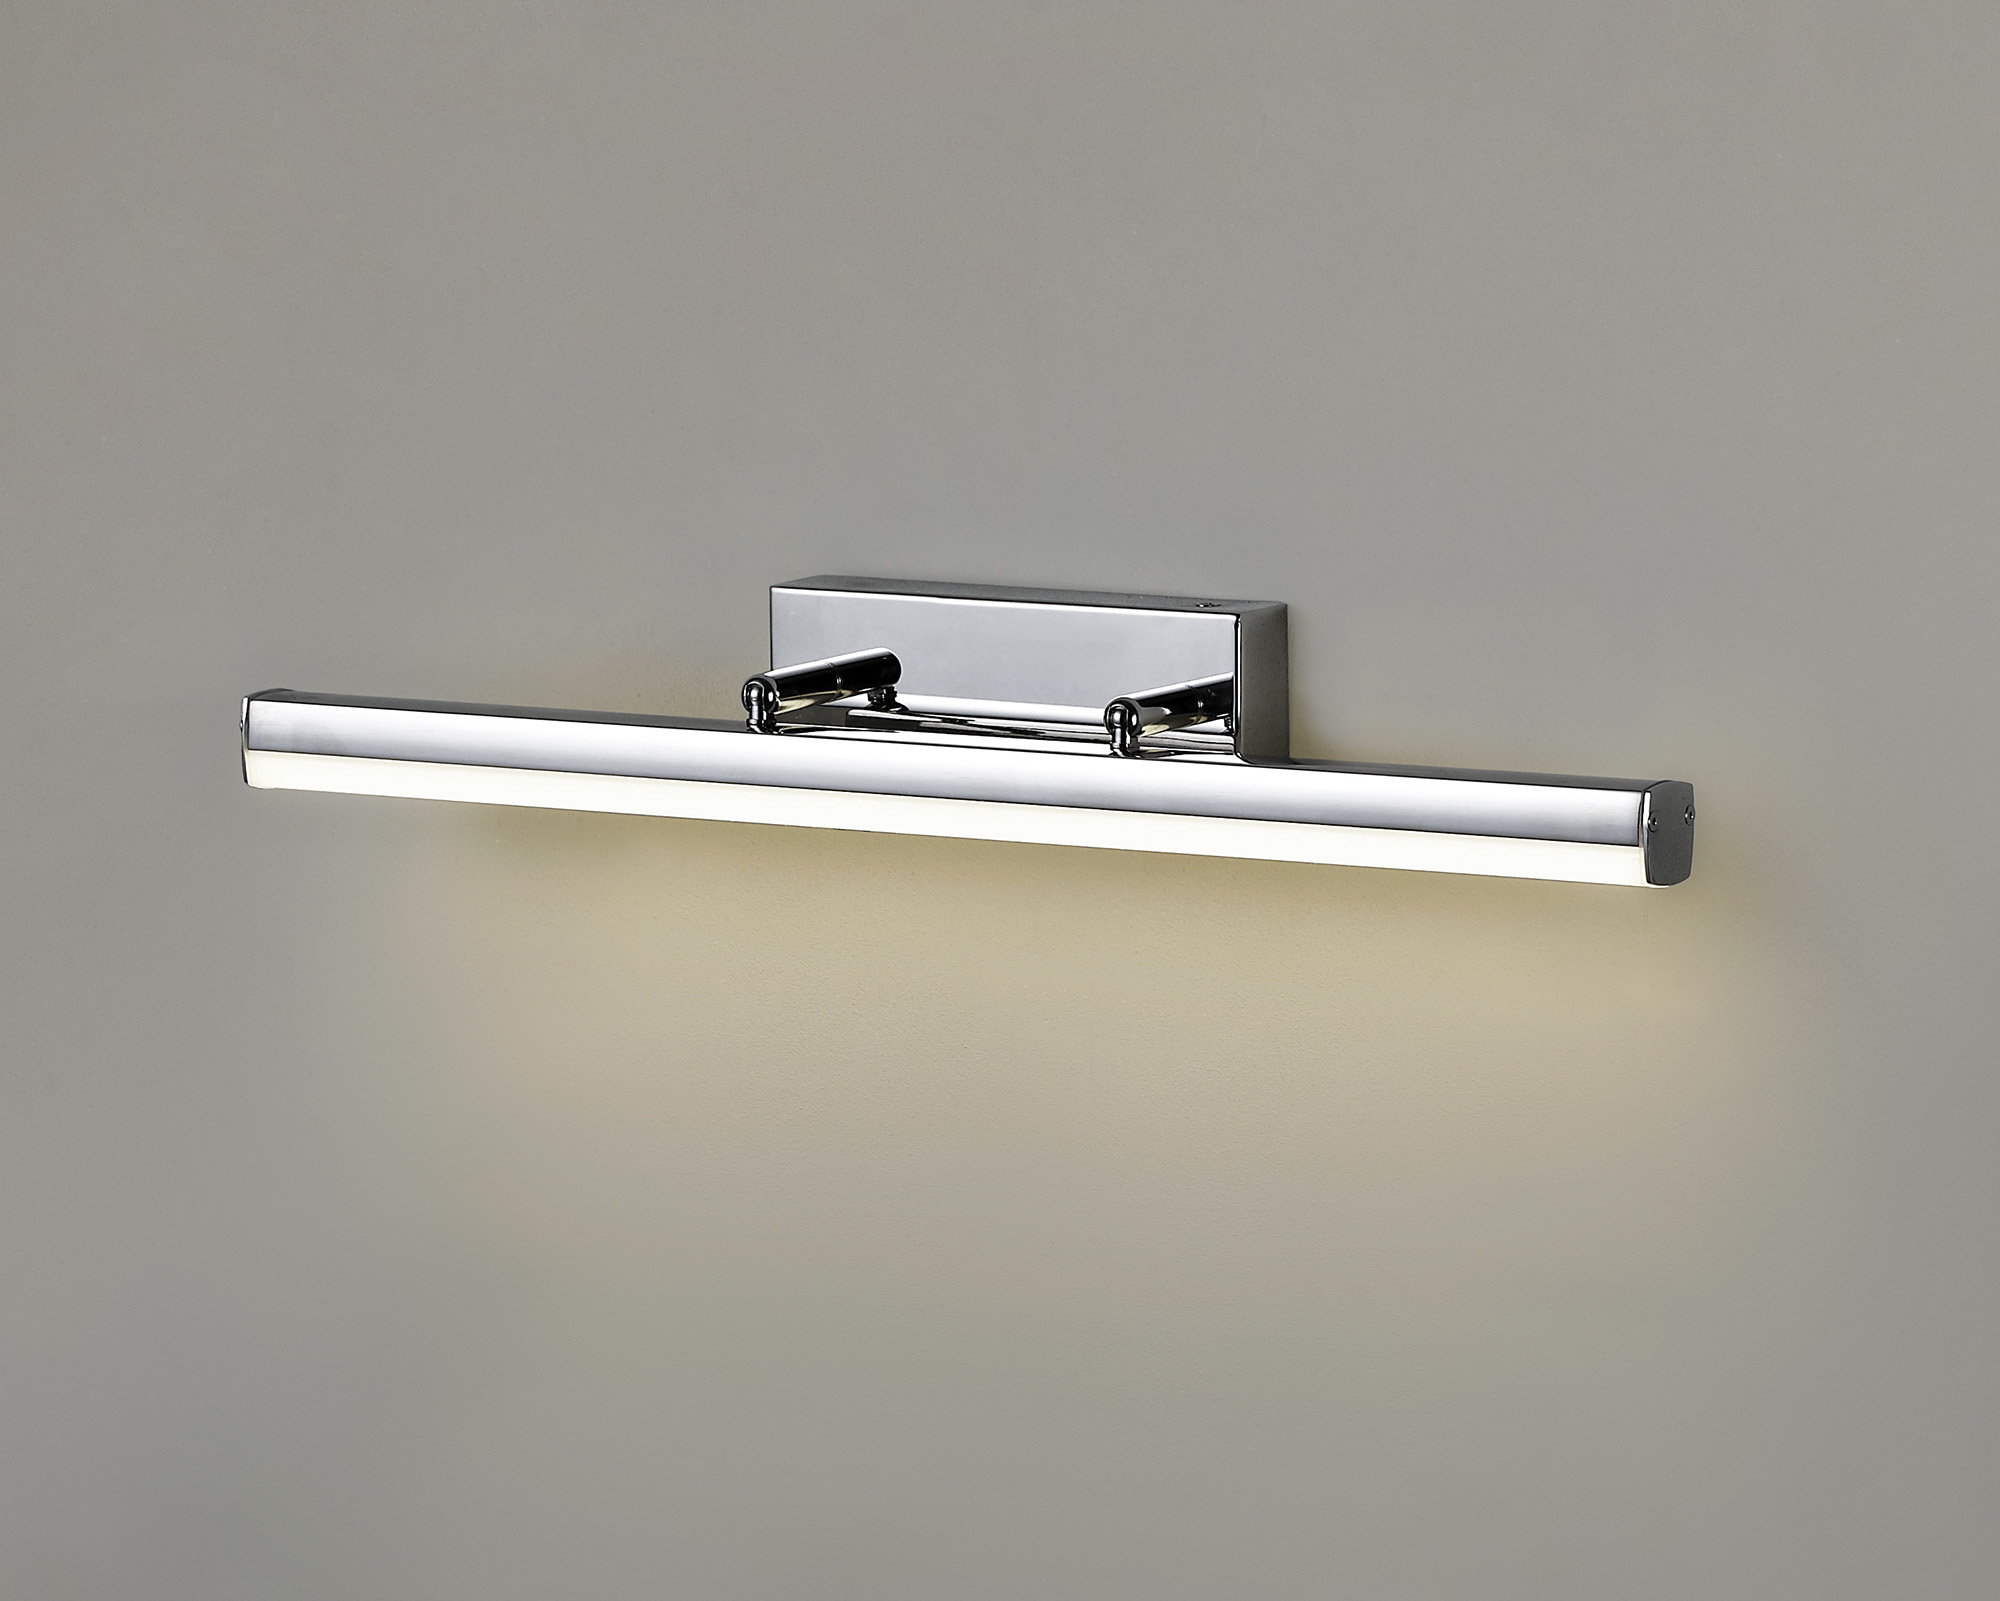 Wall Lamp Large Adjustable, 1 x 18W LED, 4000K, 1784lm, IP44, Polished Chrome, 3yrs Warranty